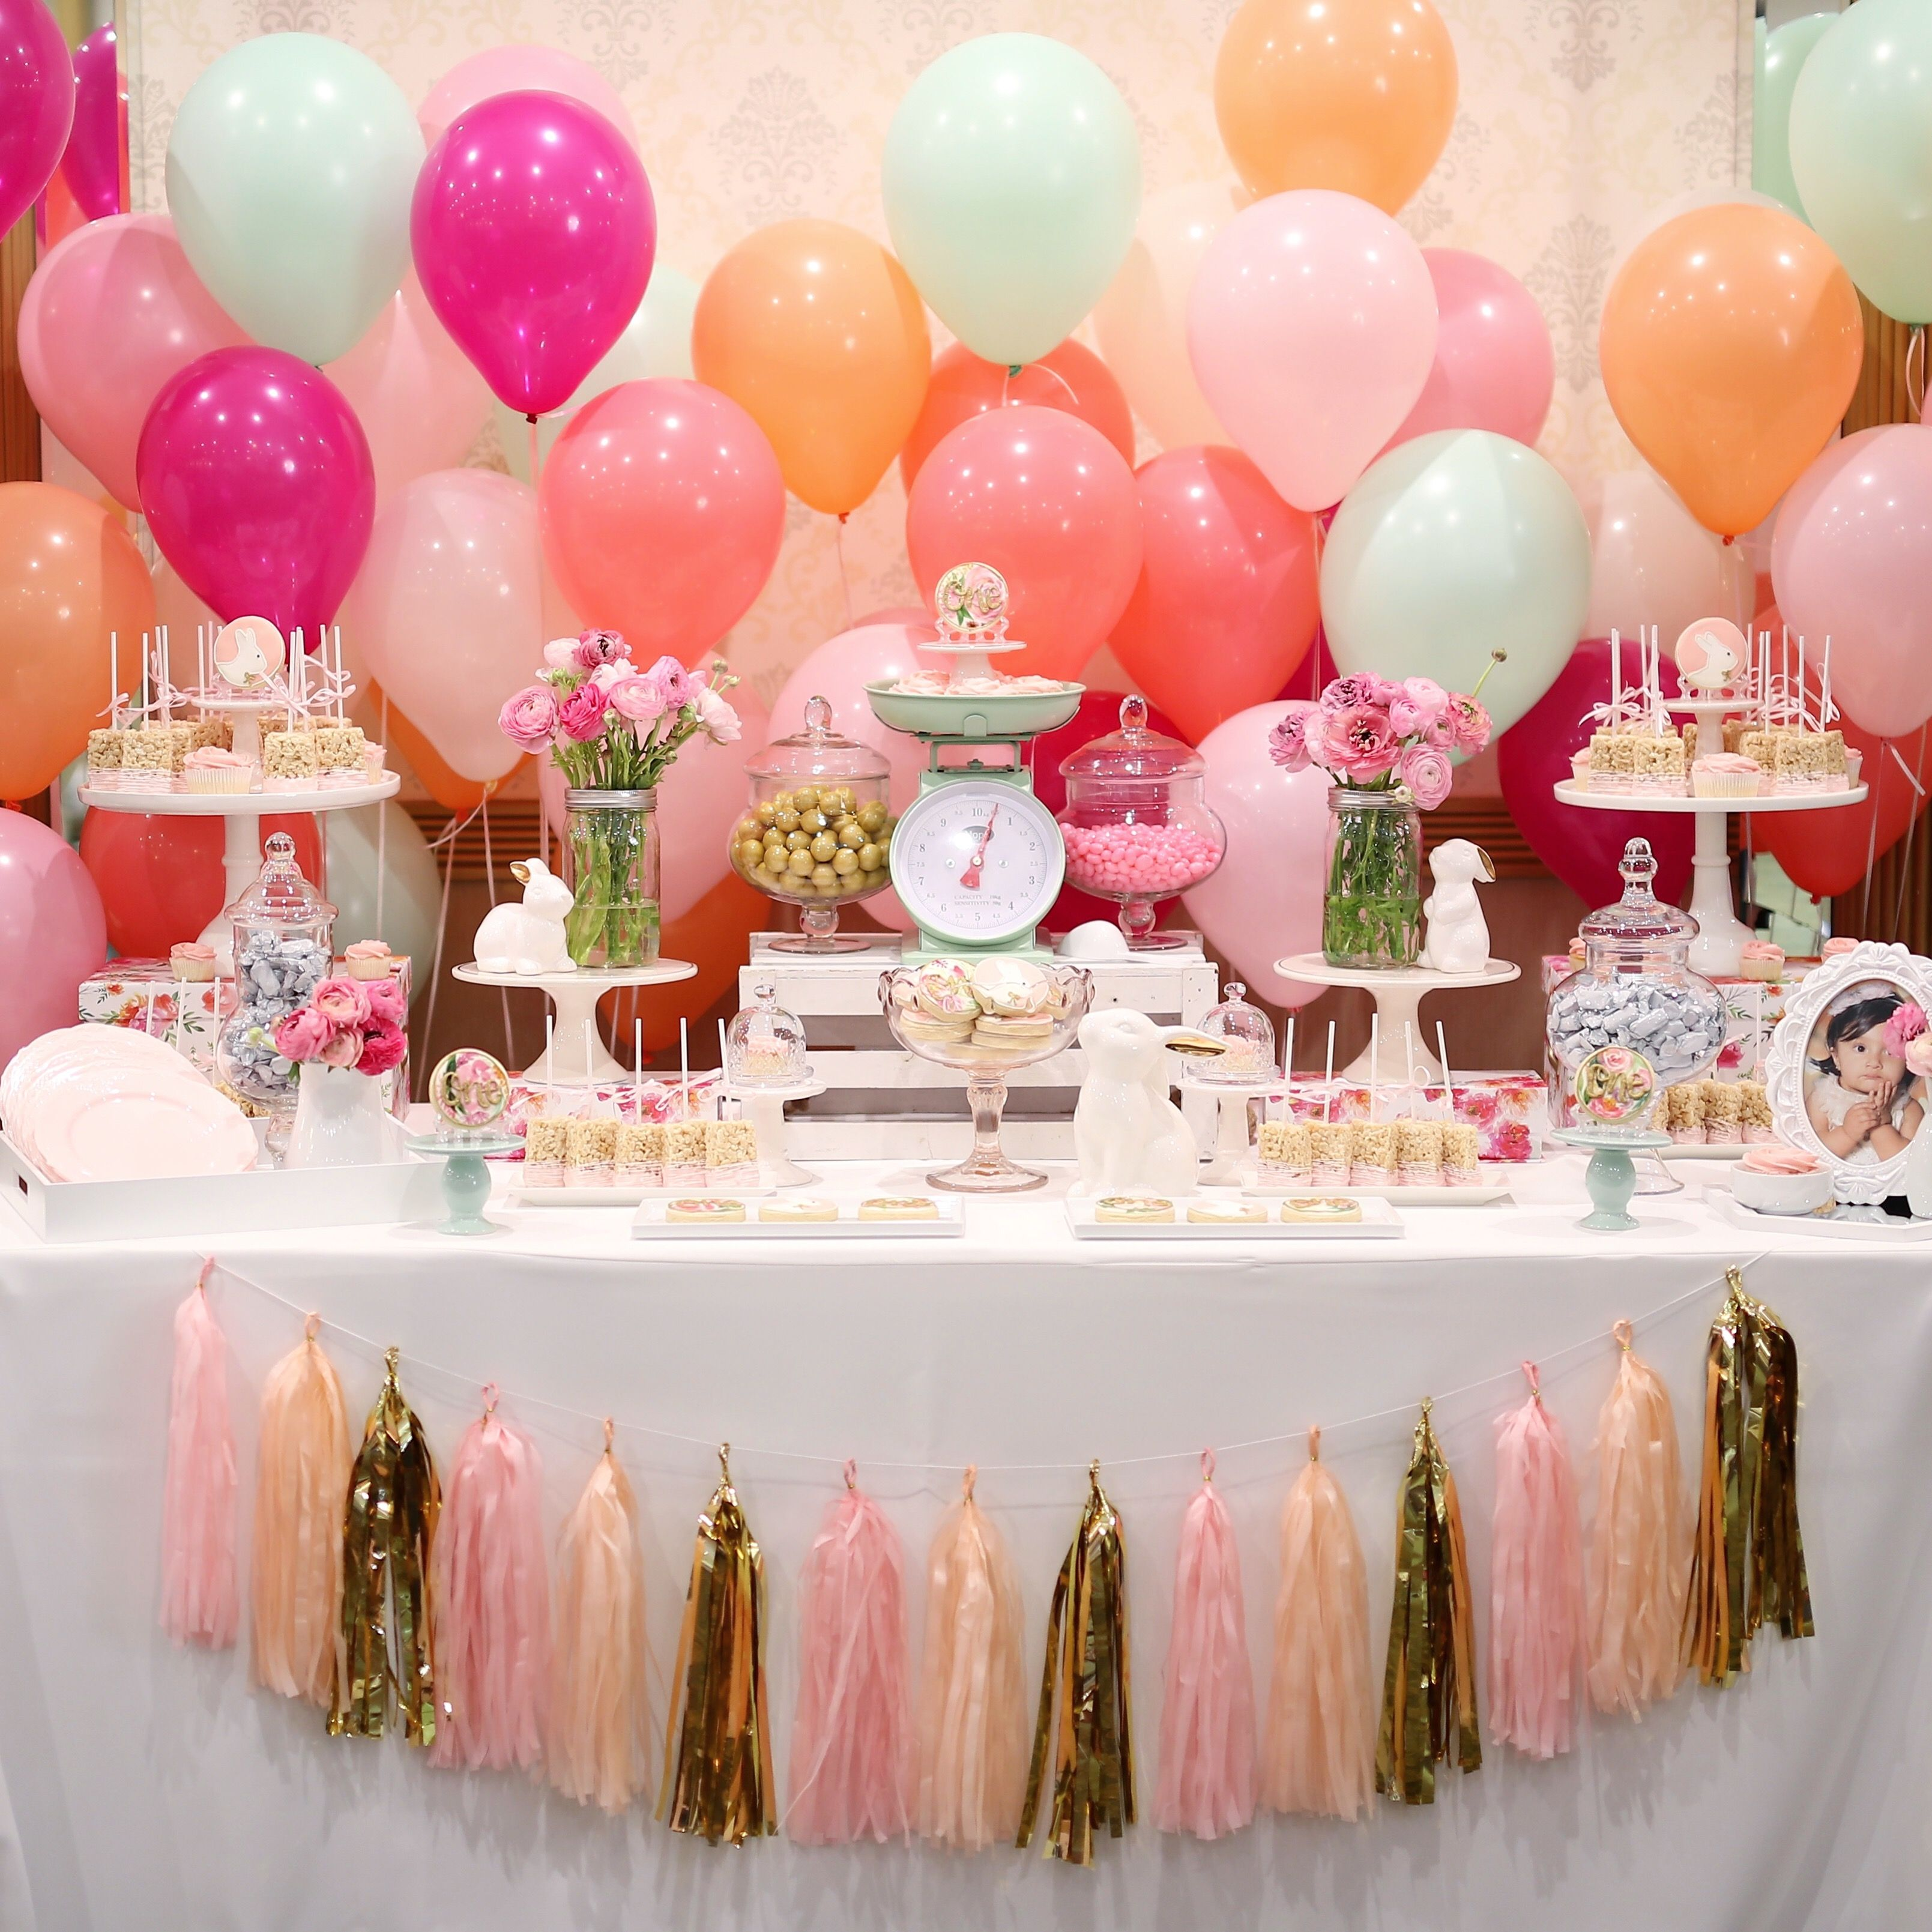 Some Bunny Is Turning One Theme Bunny Dessert Table Bunny Candy Table Bunny Sweets Table Par Bridal Shower Sweets Wedding Bubbles Wedding Aisle Decorations